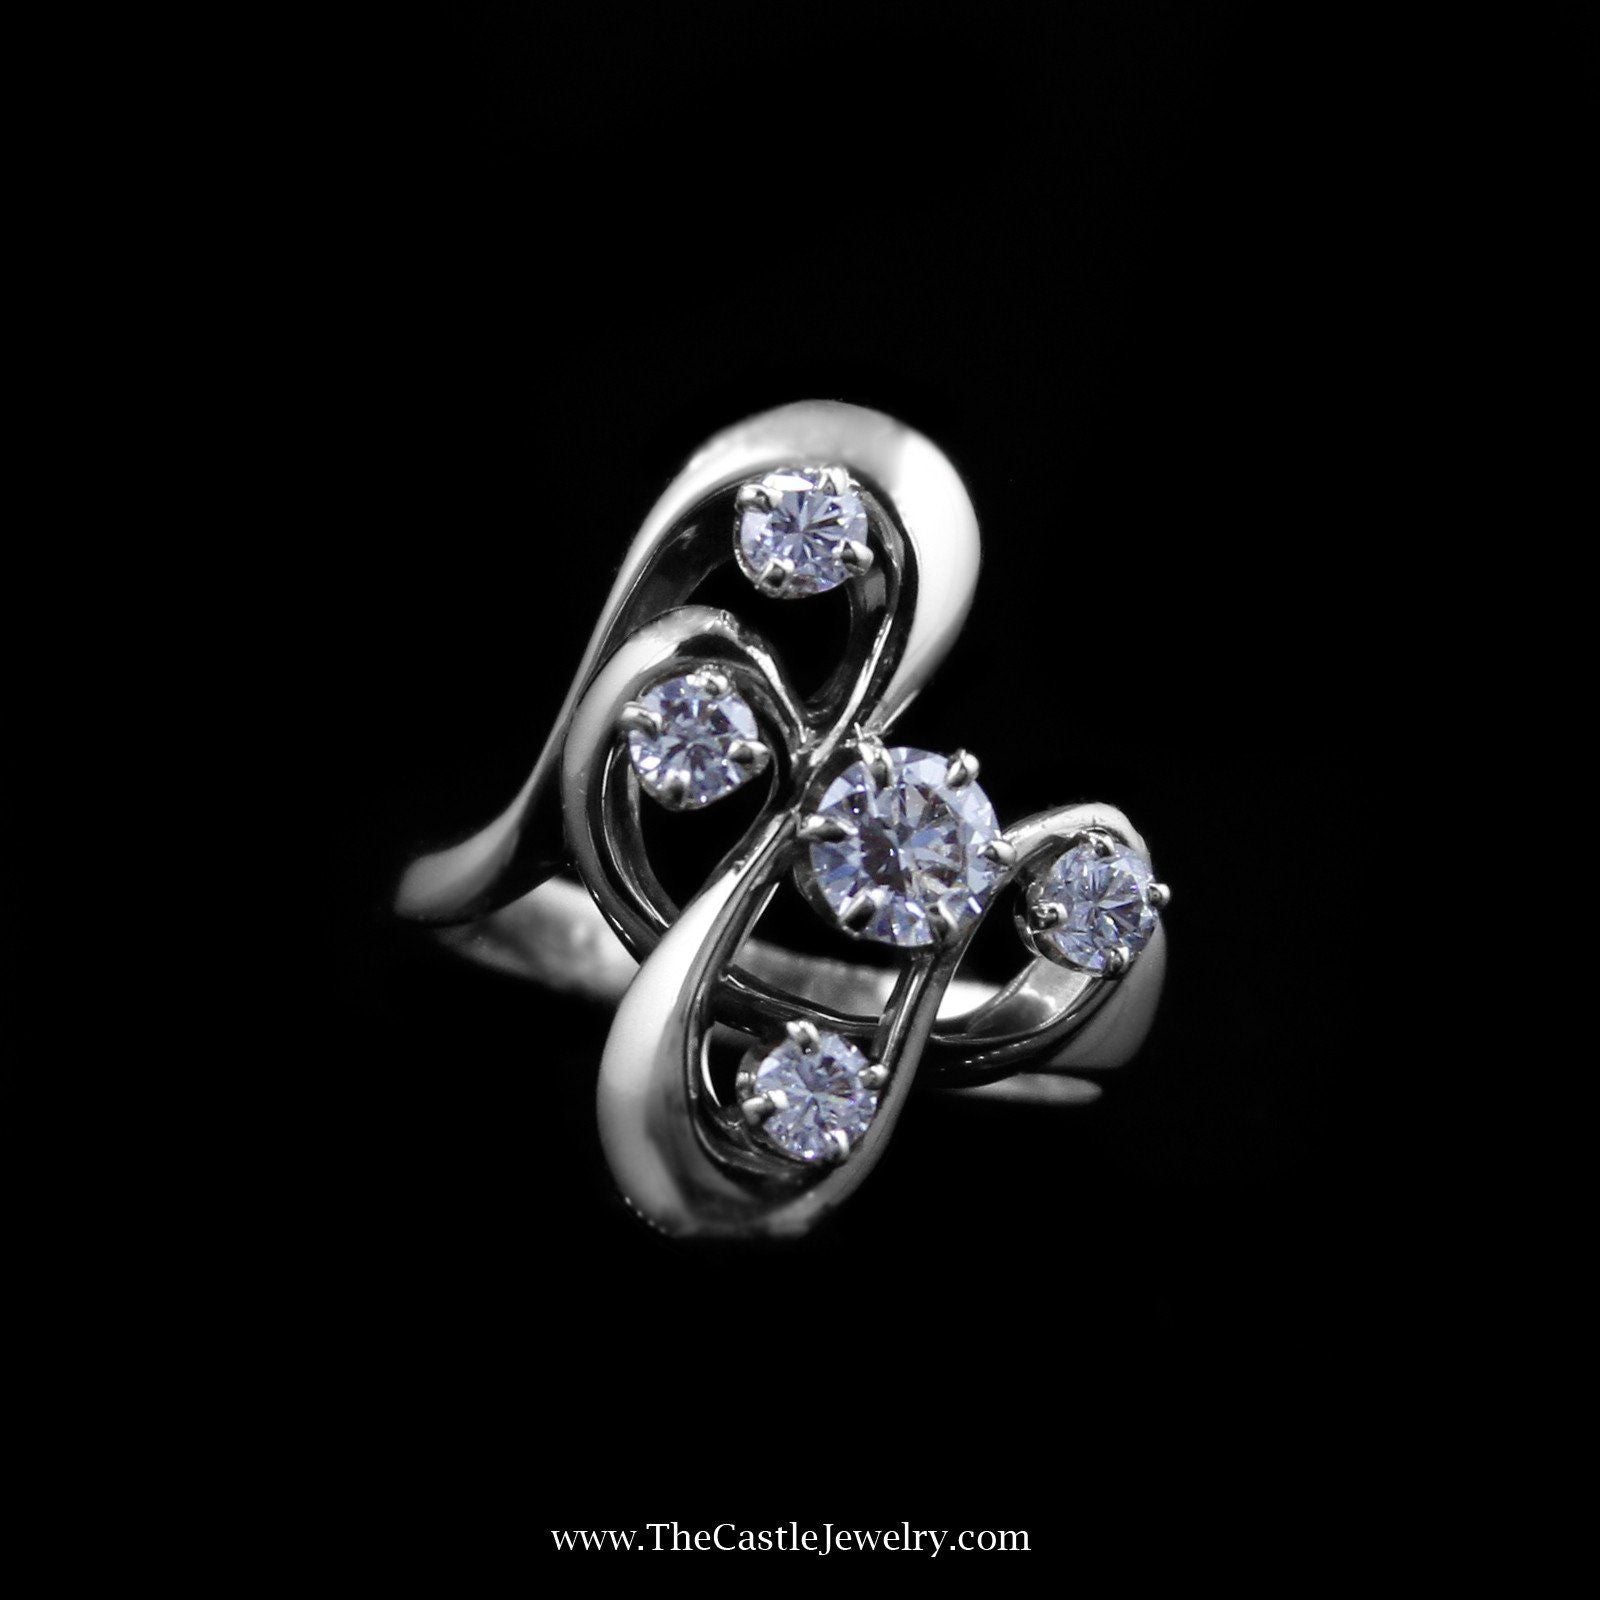 Unique .75cttw Freeform Design Diamond Ring in White Gold